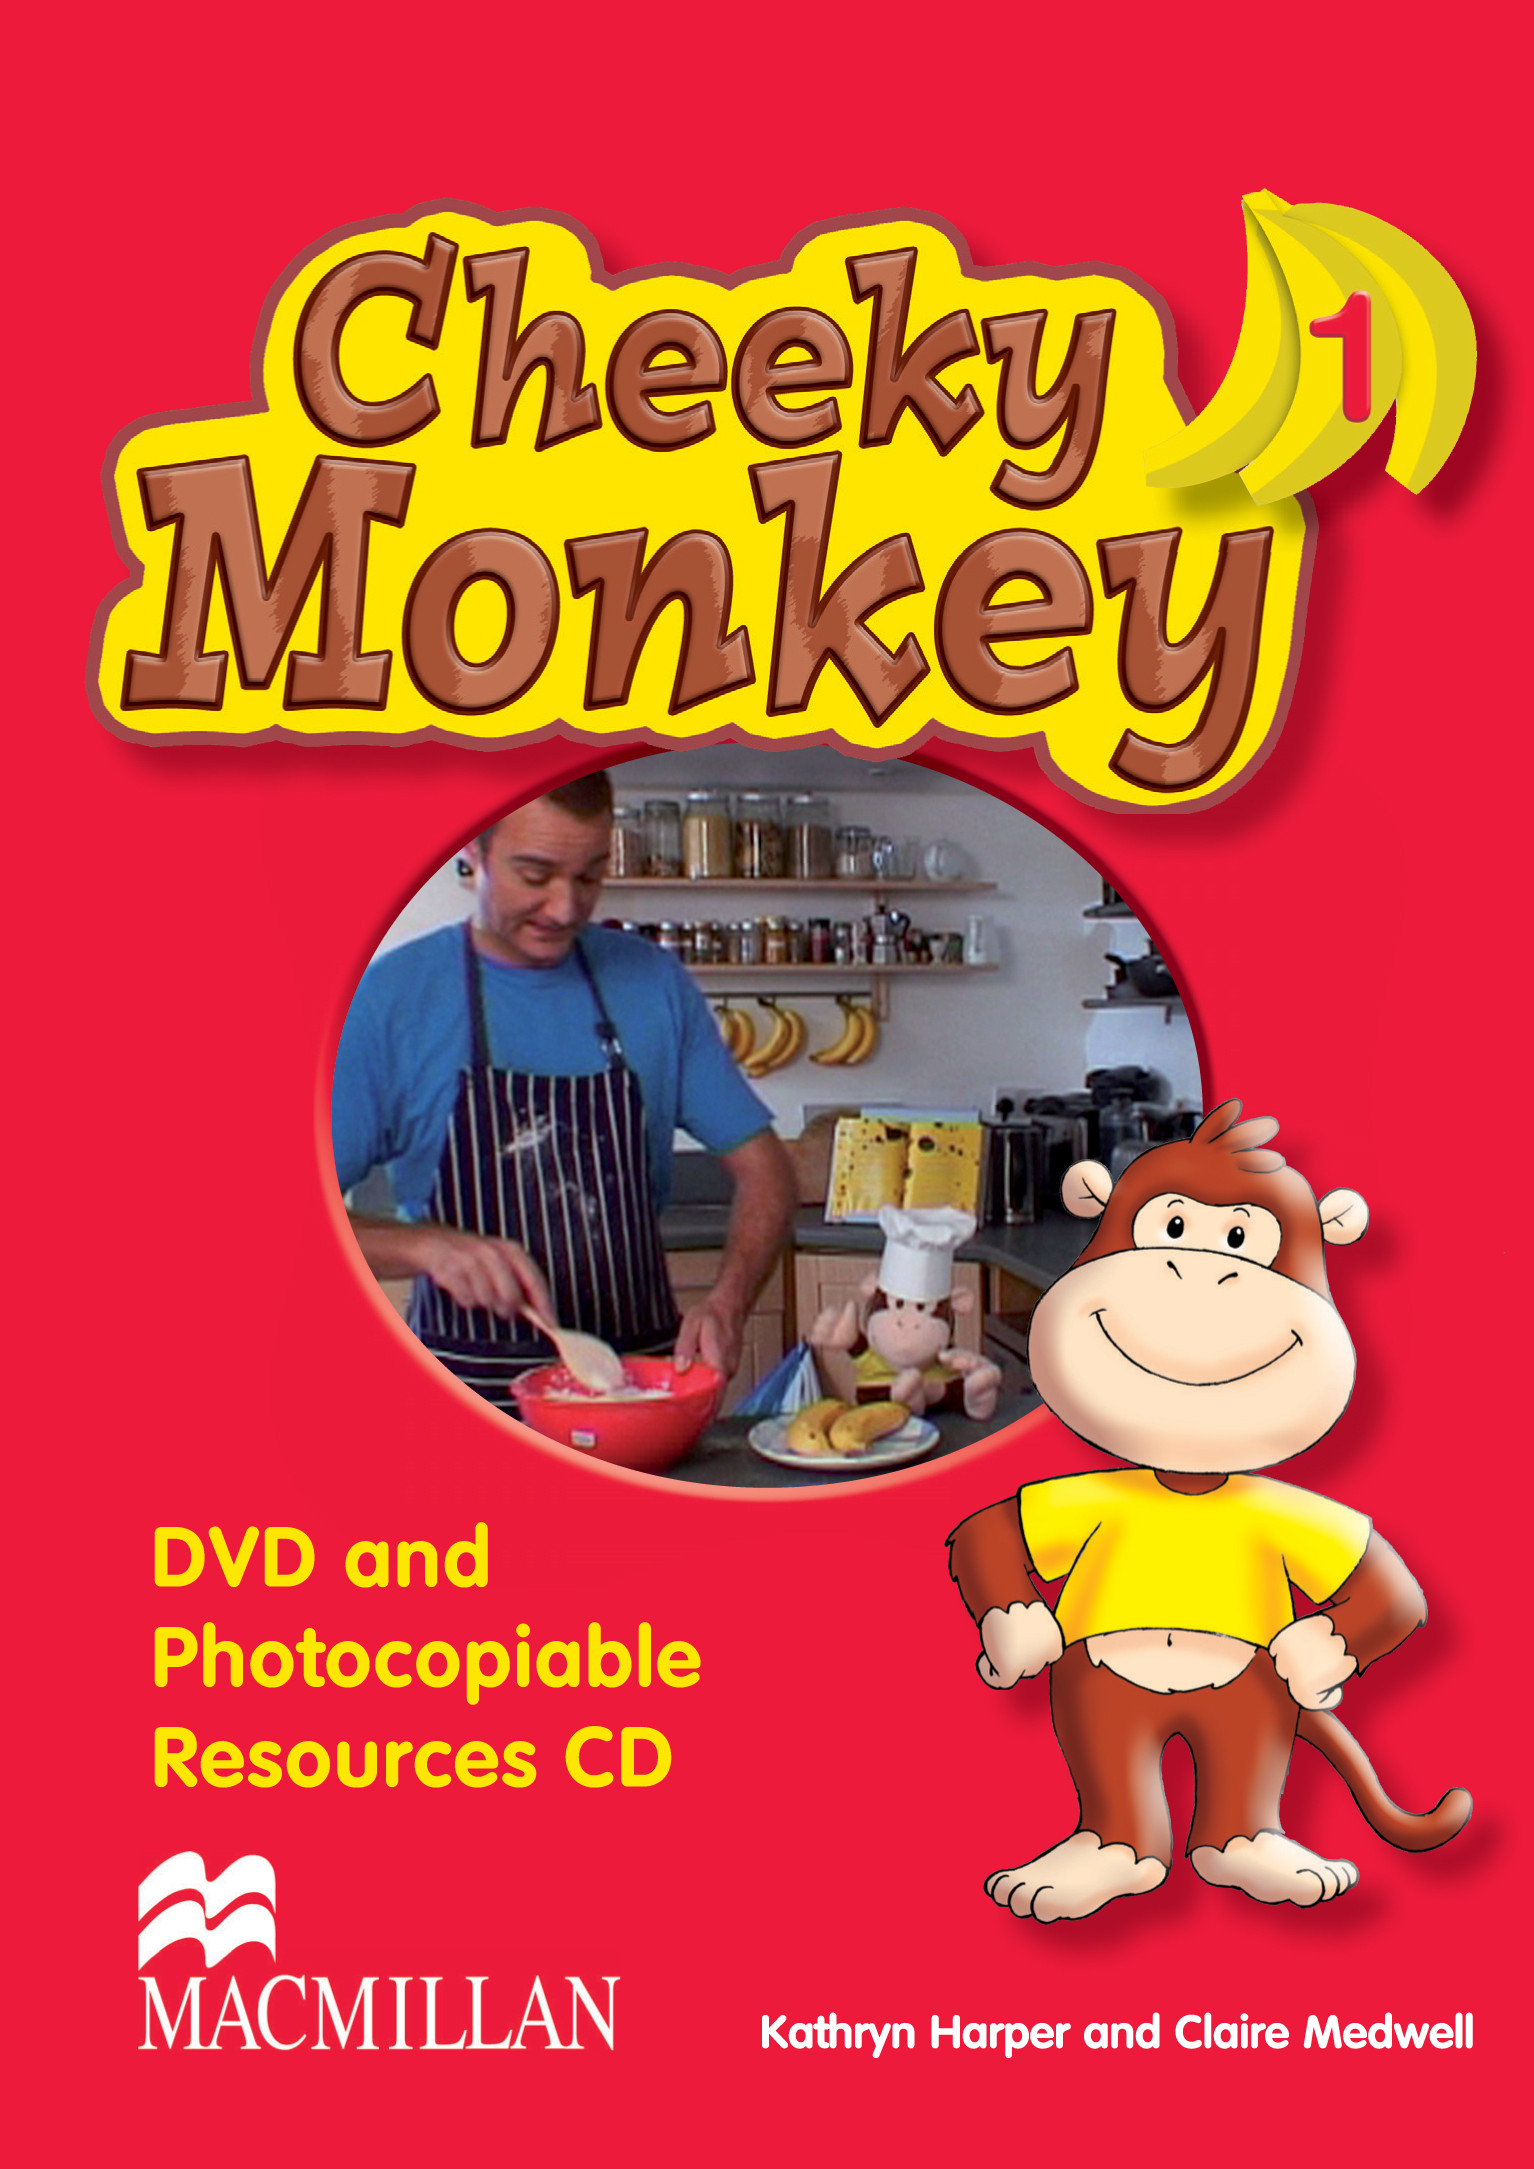 Cheeky Monkey 1 DVD and Photocopiable CD